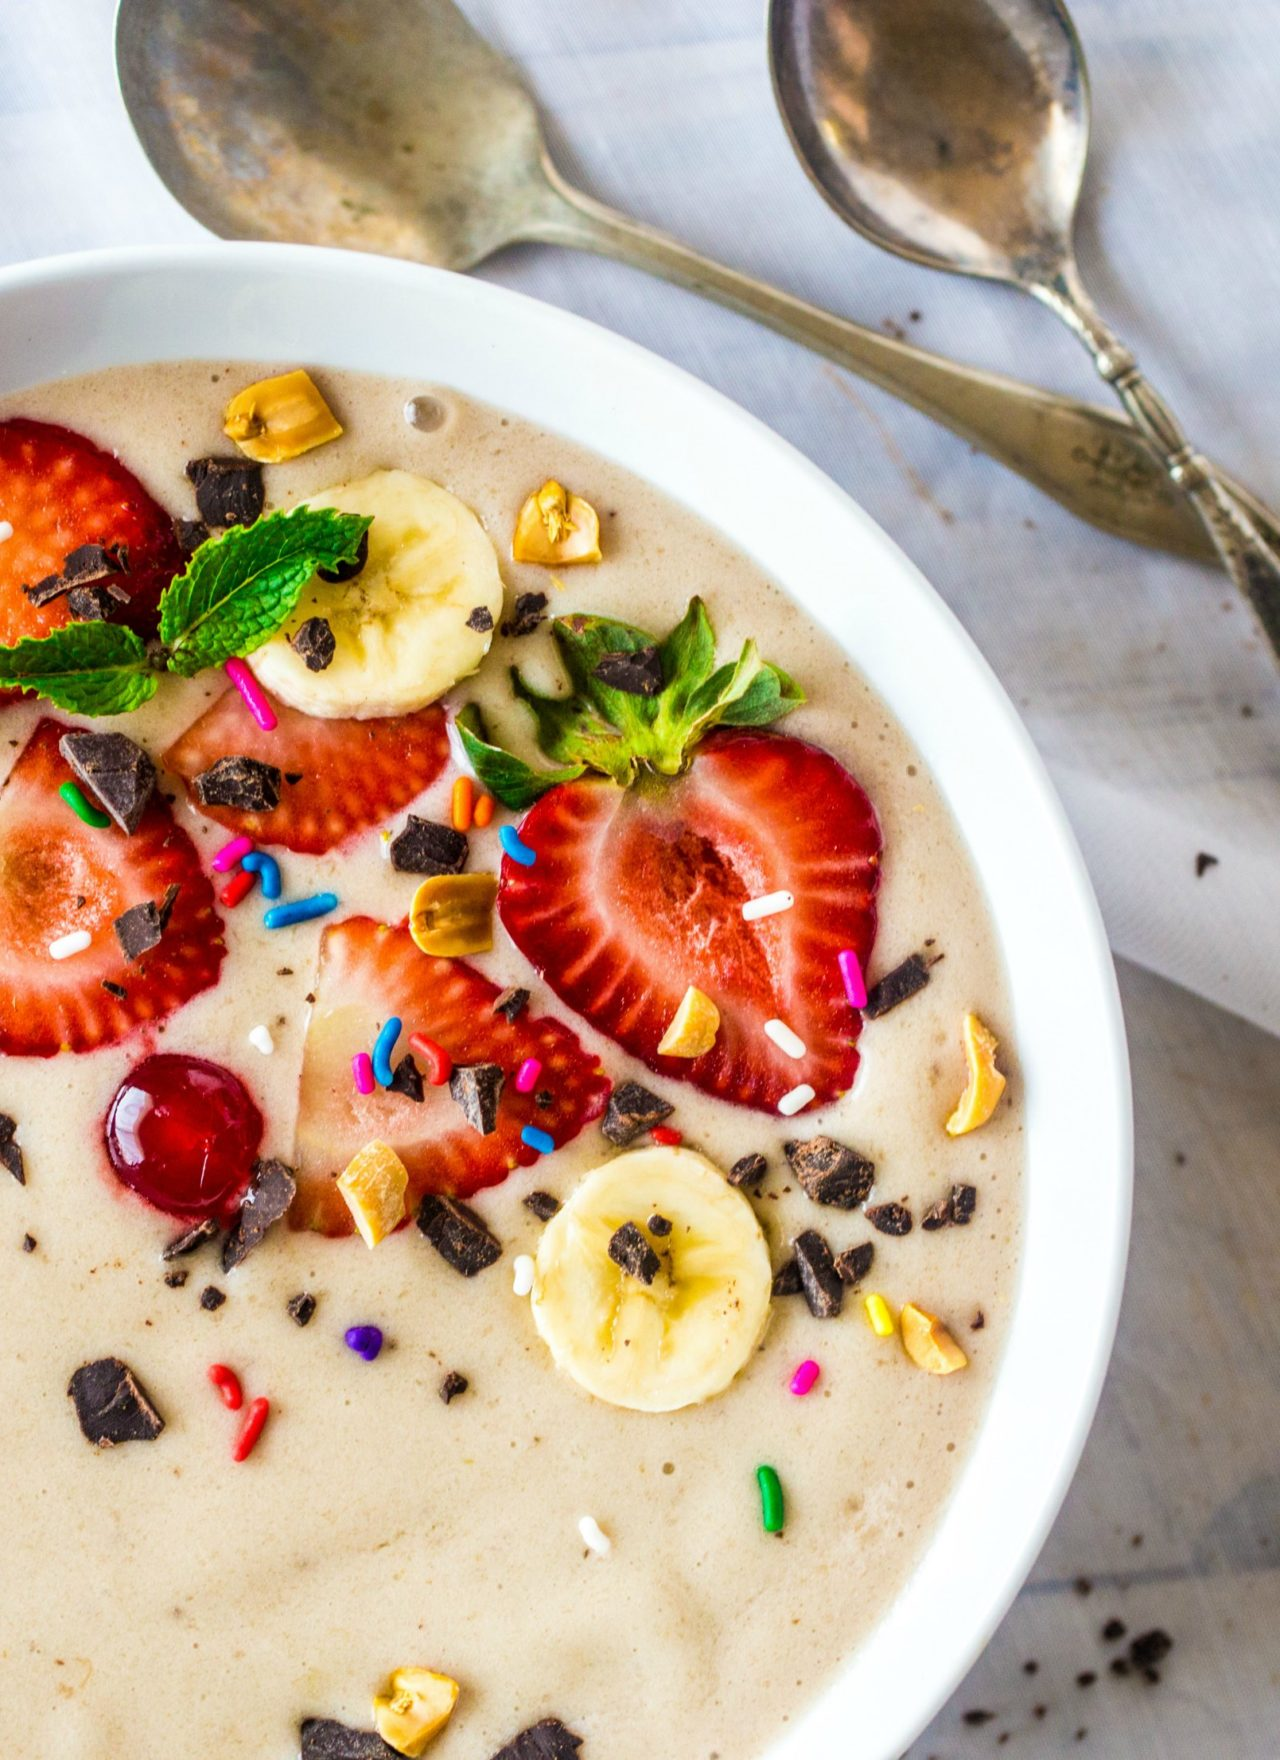 How to Feel Better Eating a C.R.A.P. Focused Diet